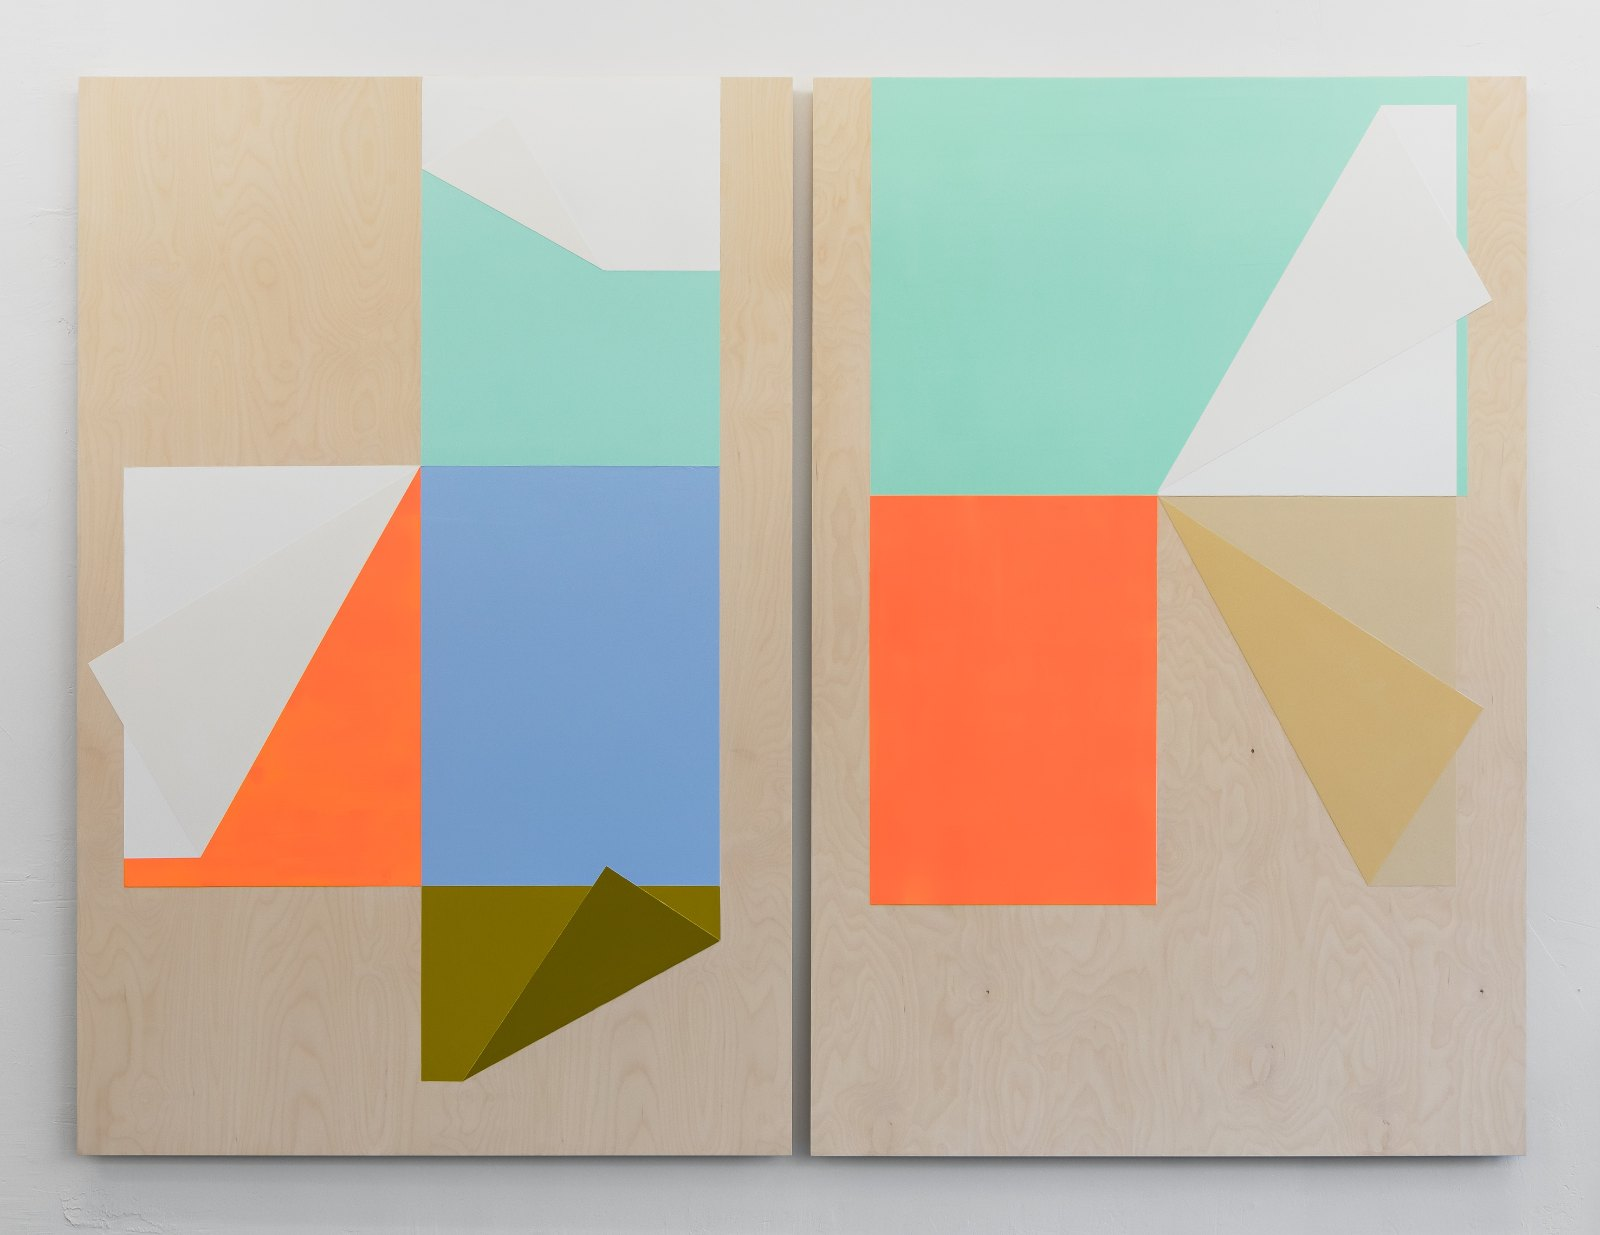 Untitled (Diptych), 2016, acrylic and gesso on plywood, 2 panels 180 x 120 cm (overall 180 x 244 cm)